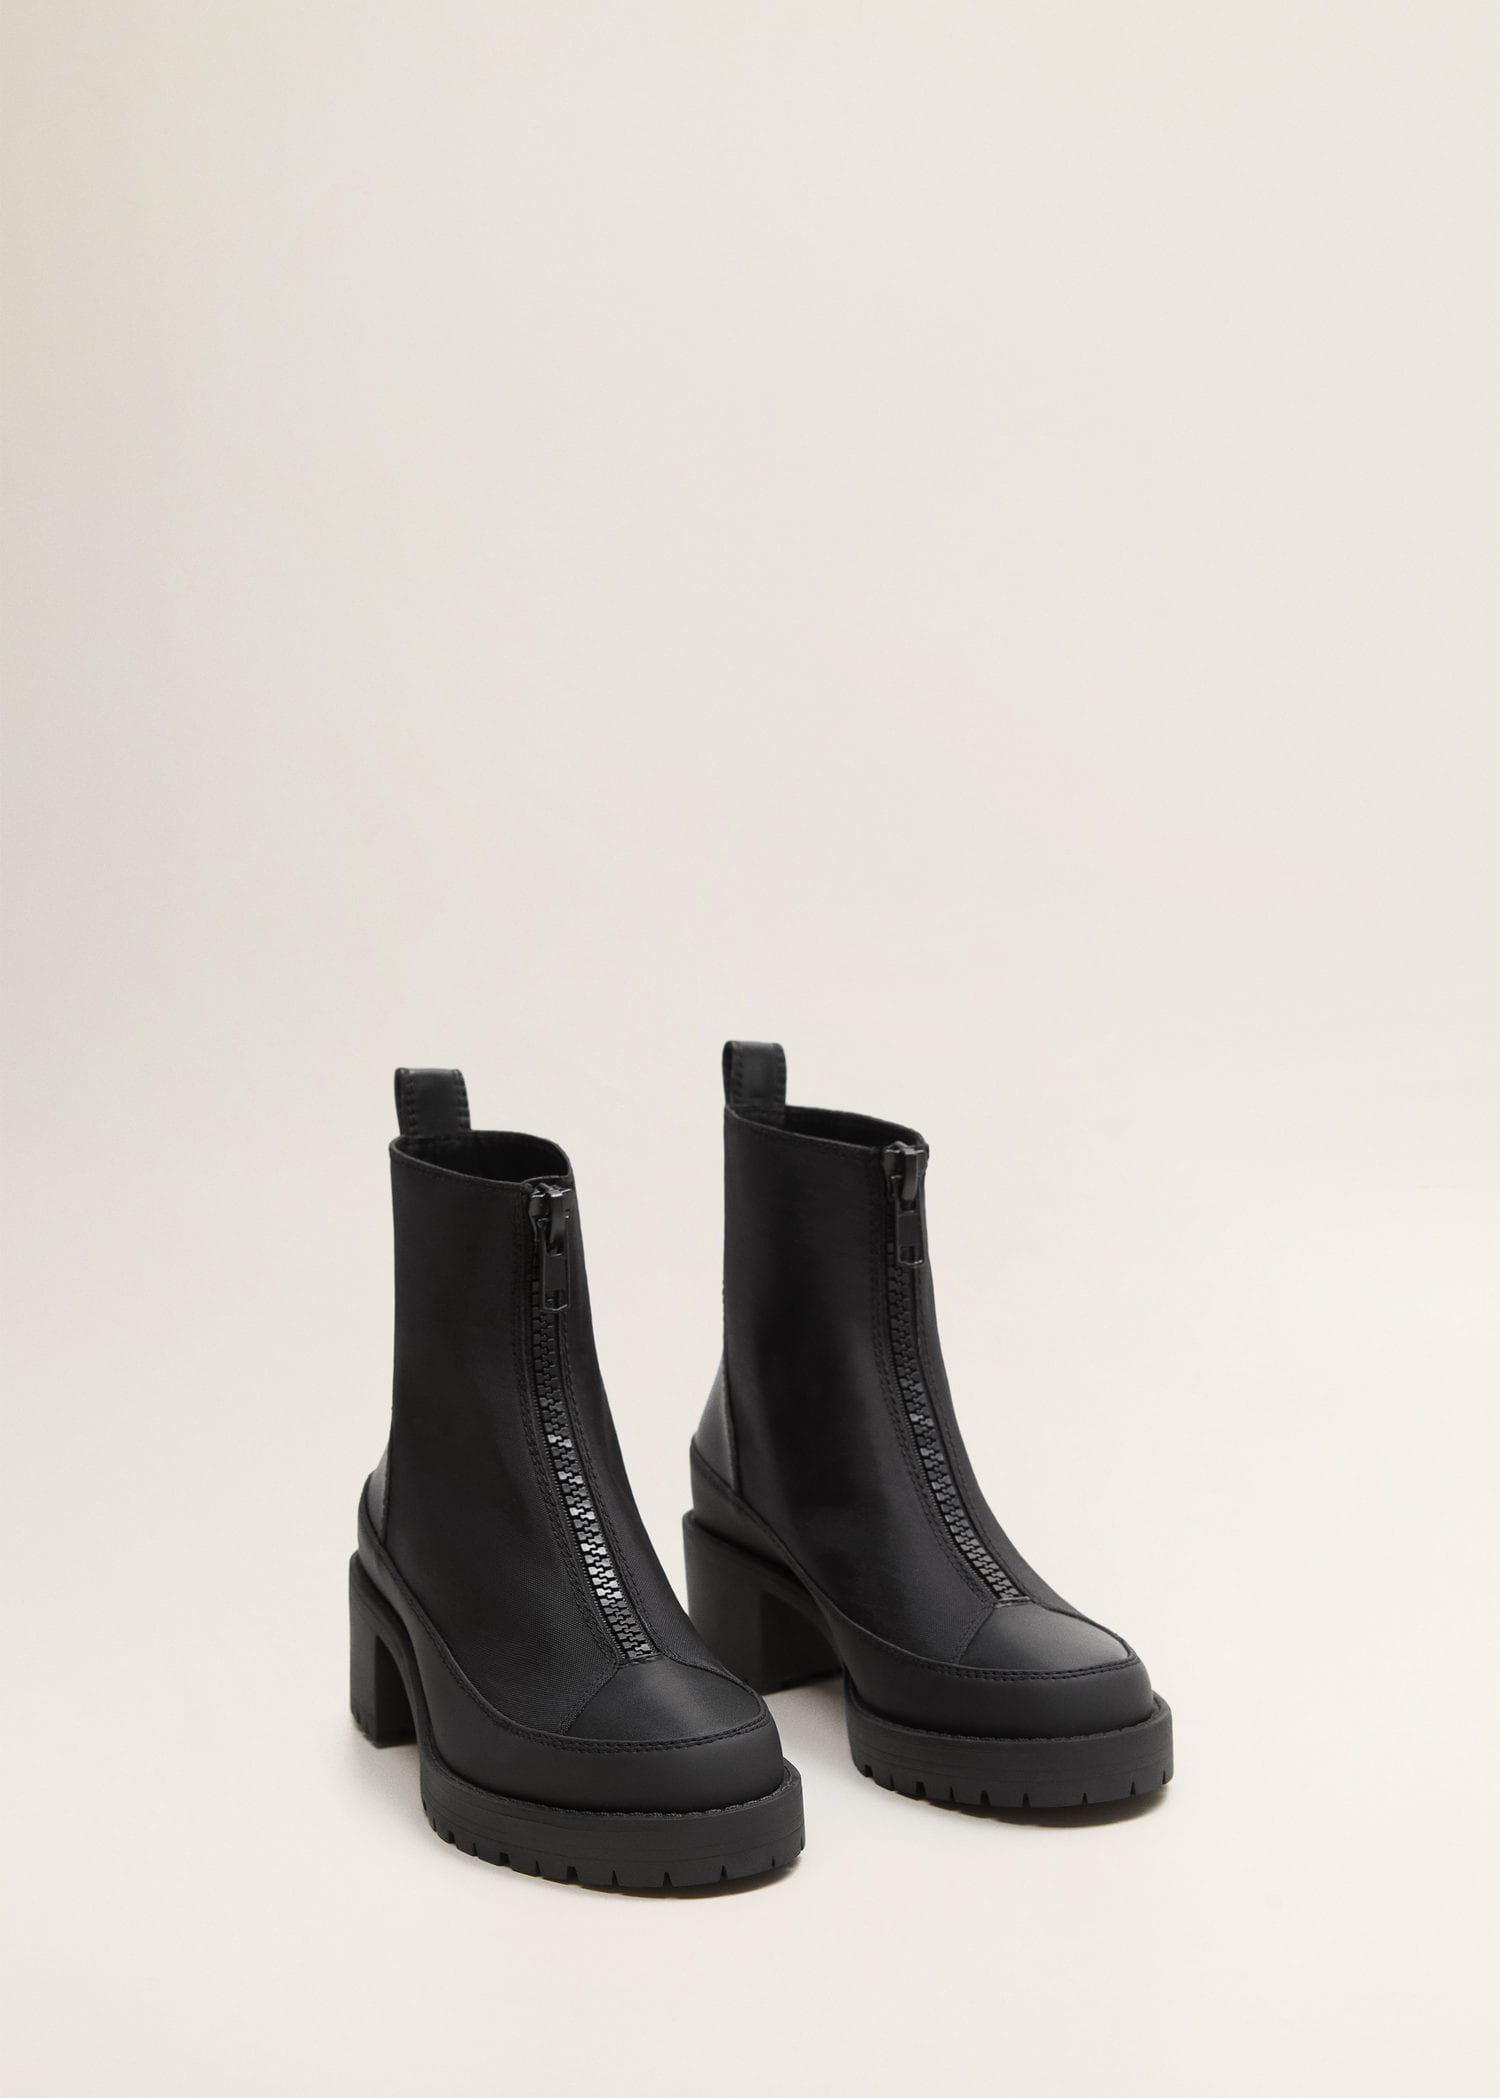 60ad57a7be33 Cheap Boots For Women To Buy This Fall